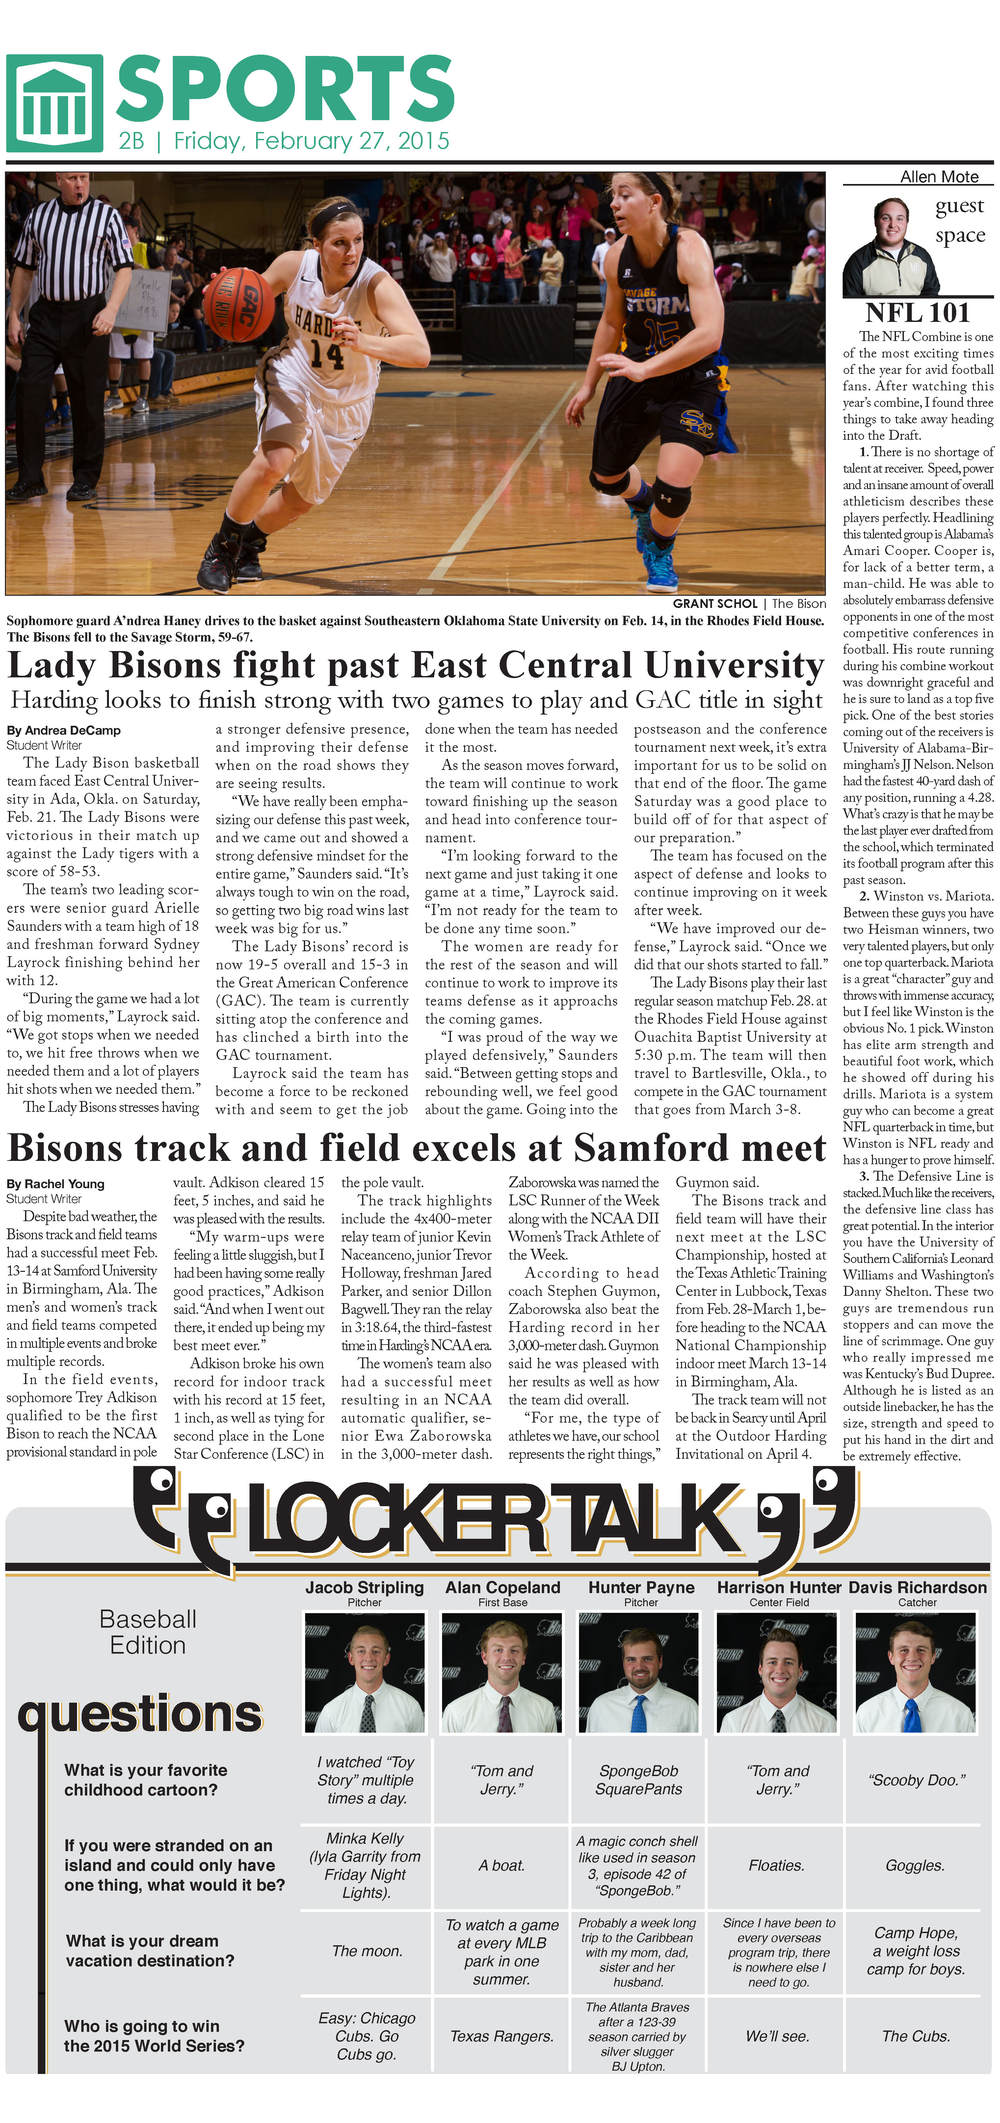 Bison 2011-Fall 2014_Page_051.jpg